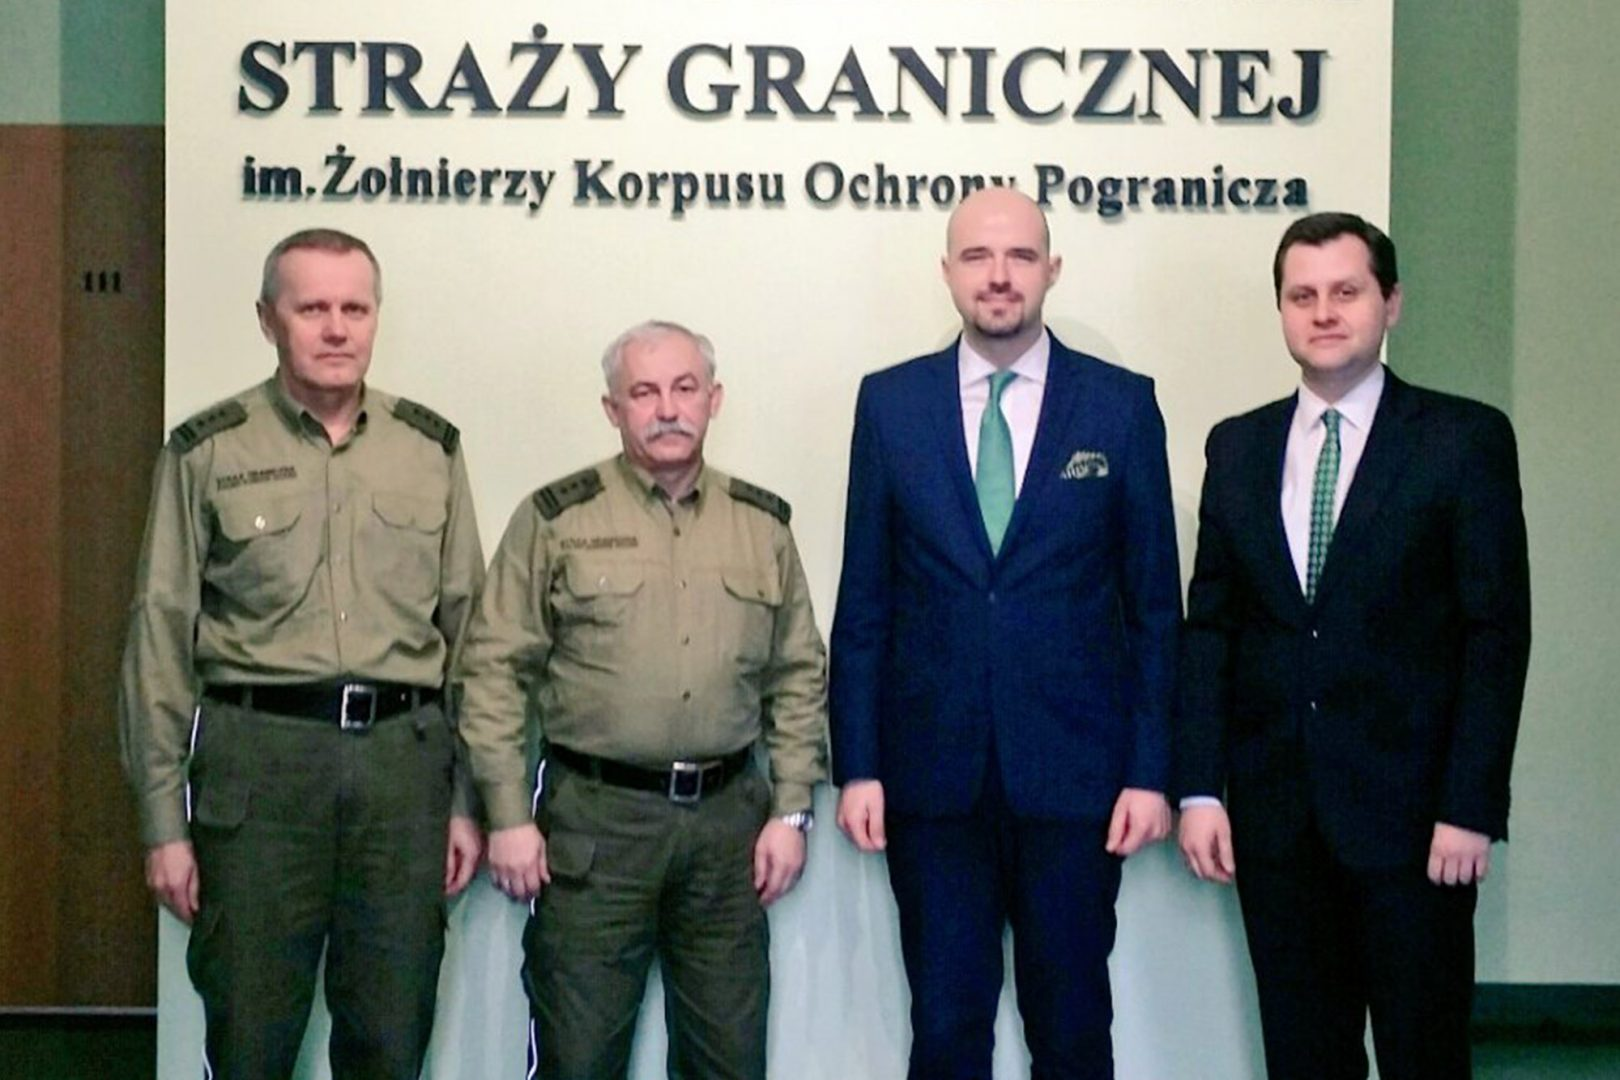 Vital role of the Border Guard in state's security system – Casimir Pulaski Foundation board of directors with visit to Border Guard Training Centre